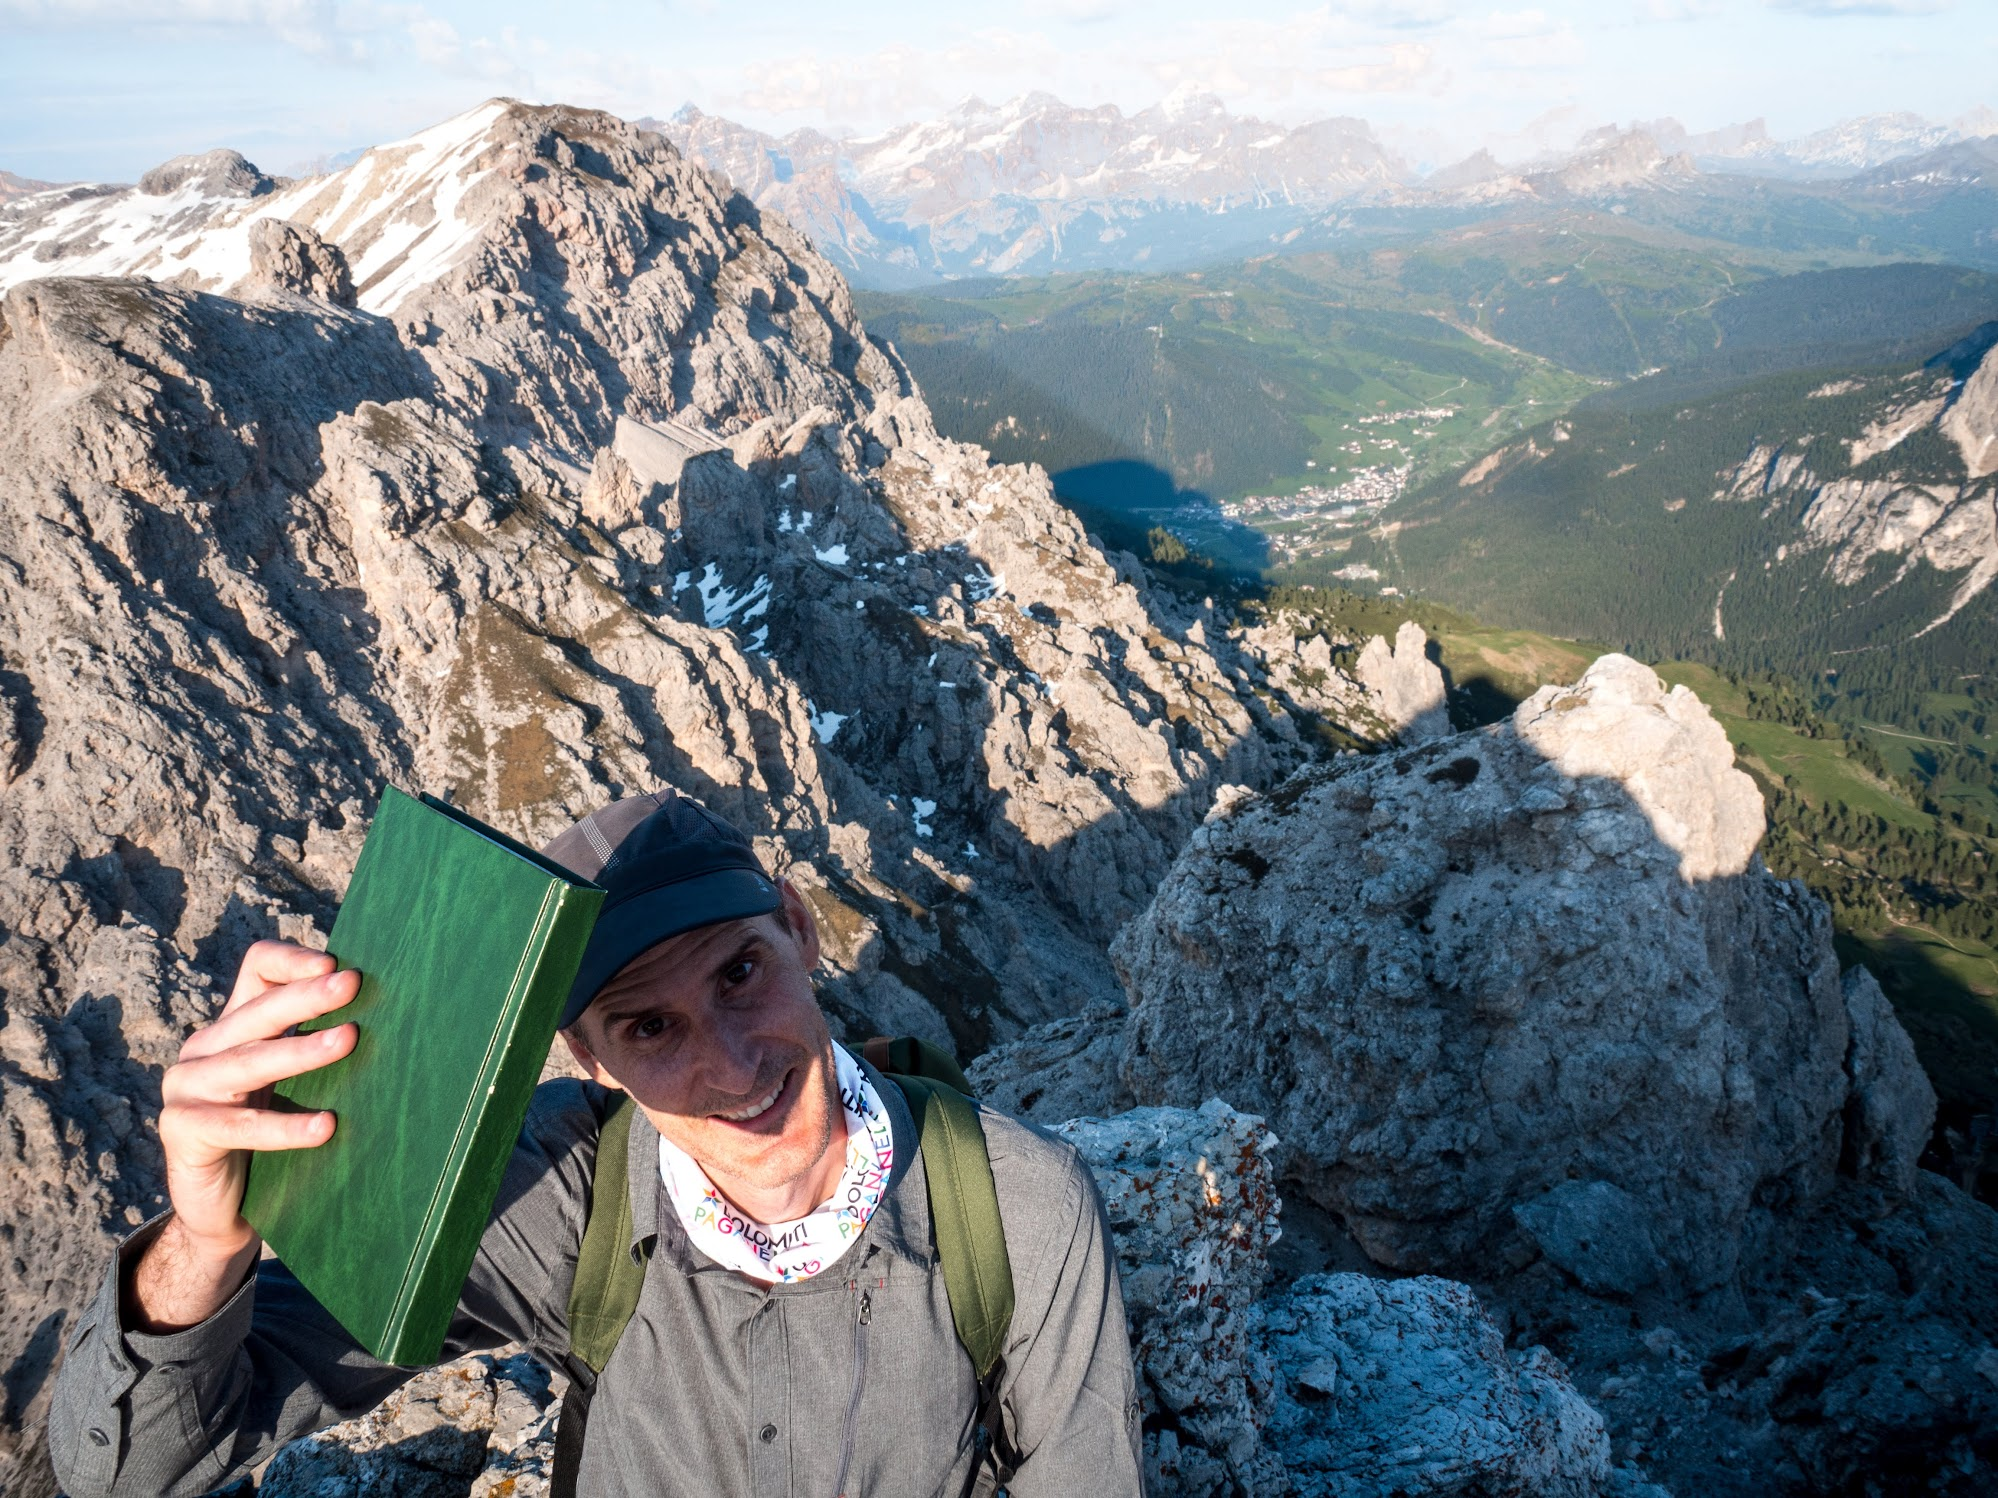 The Summit - don't forget to sign the green summit logbook.